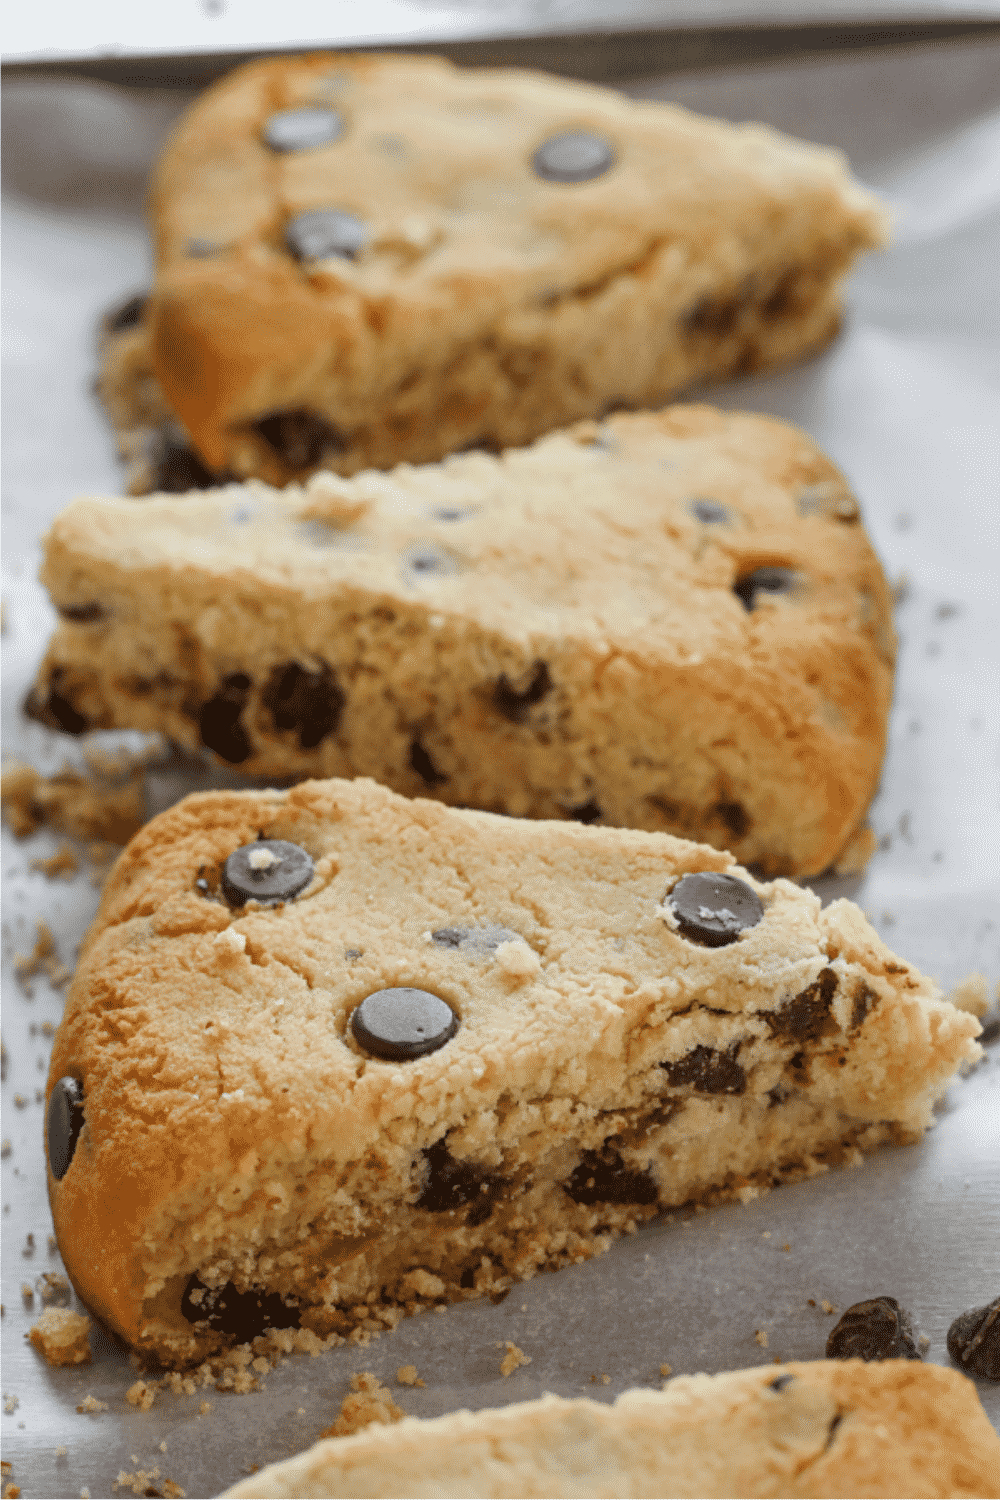 Three chocolate chip scones on a piece of white parchment paper.